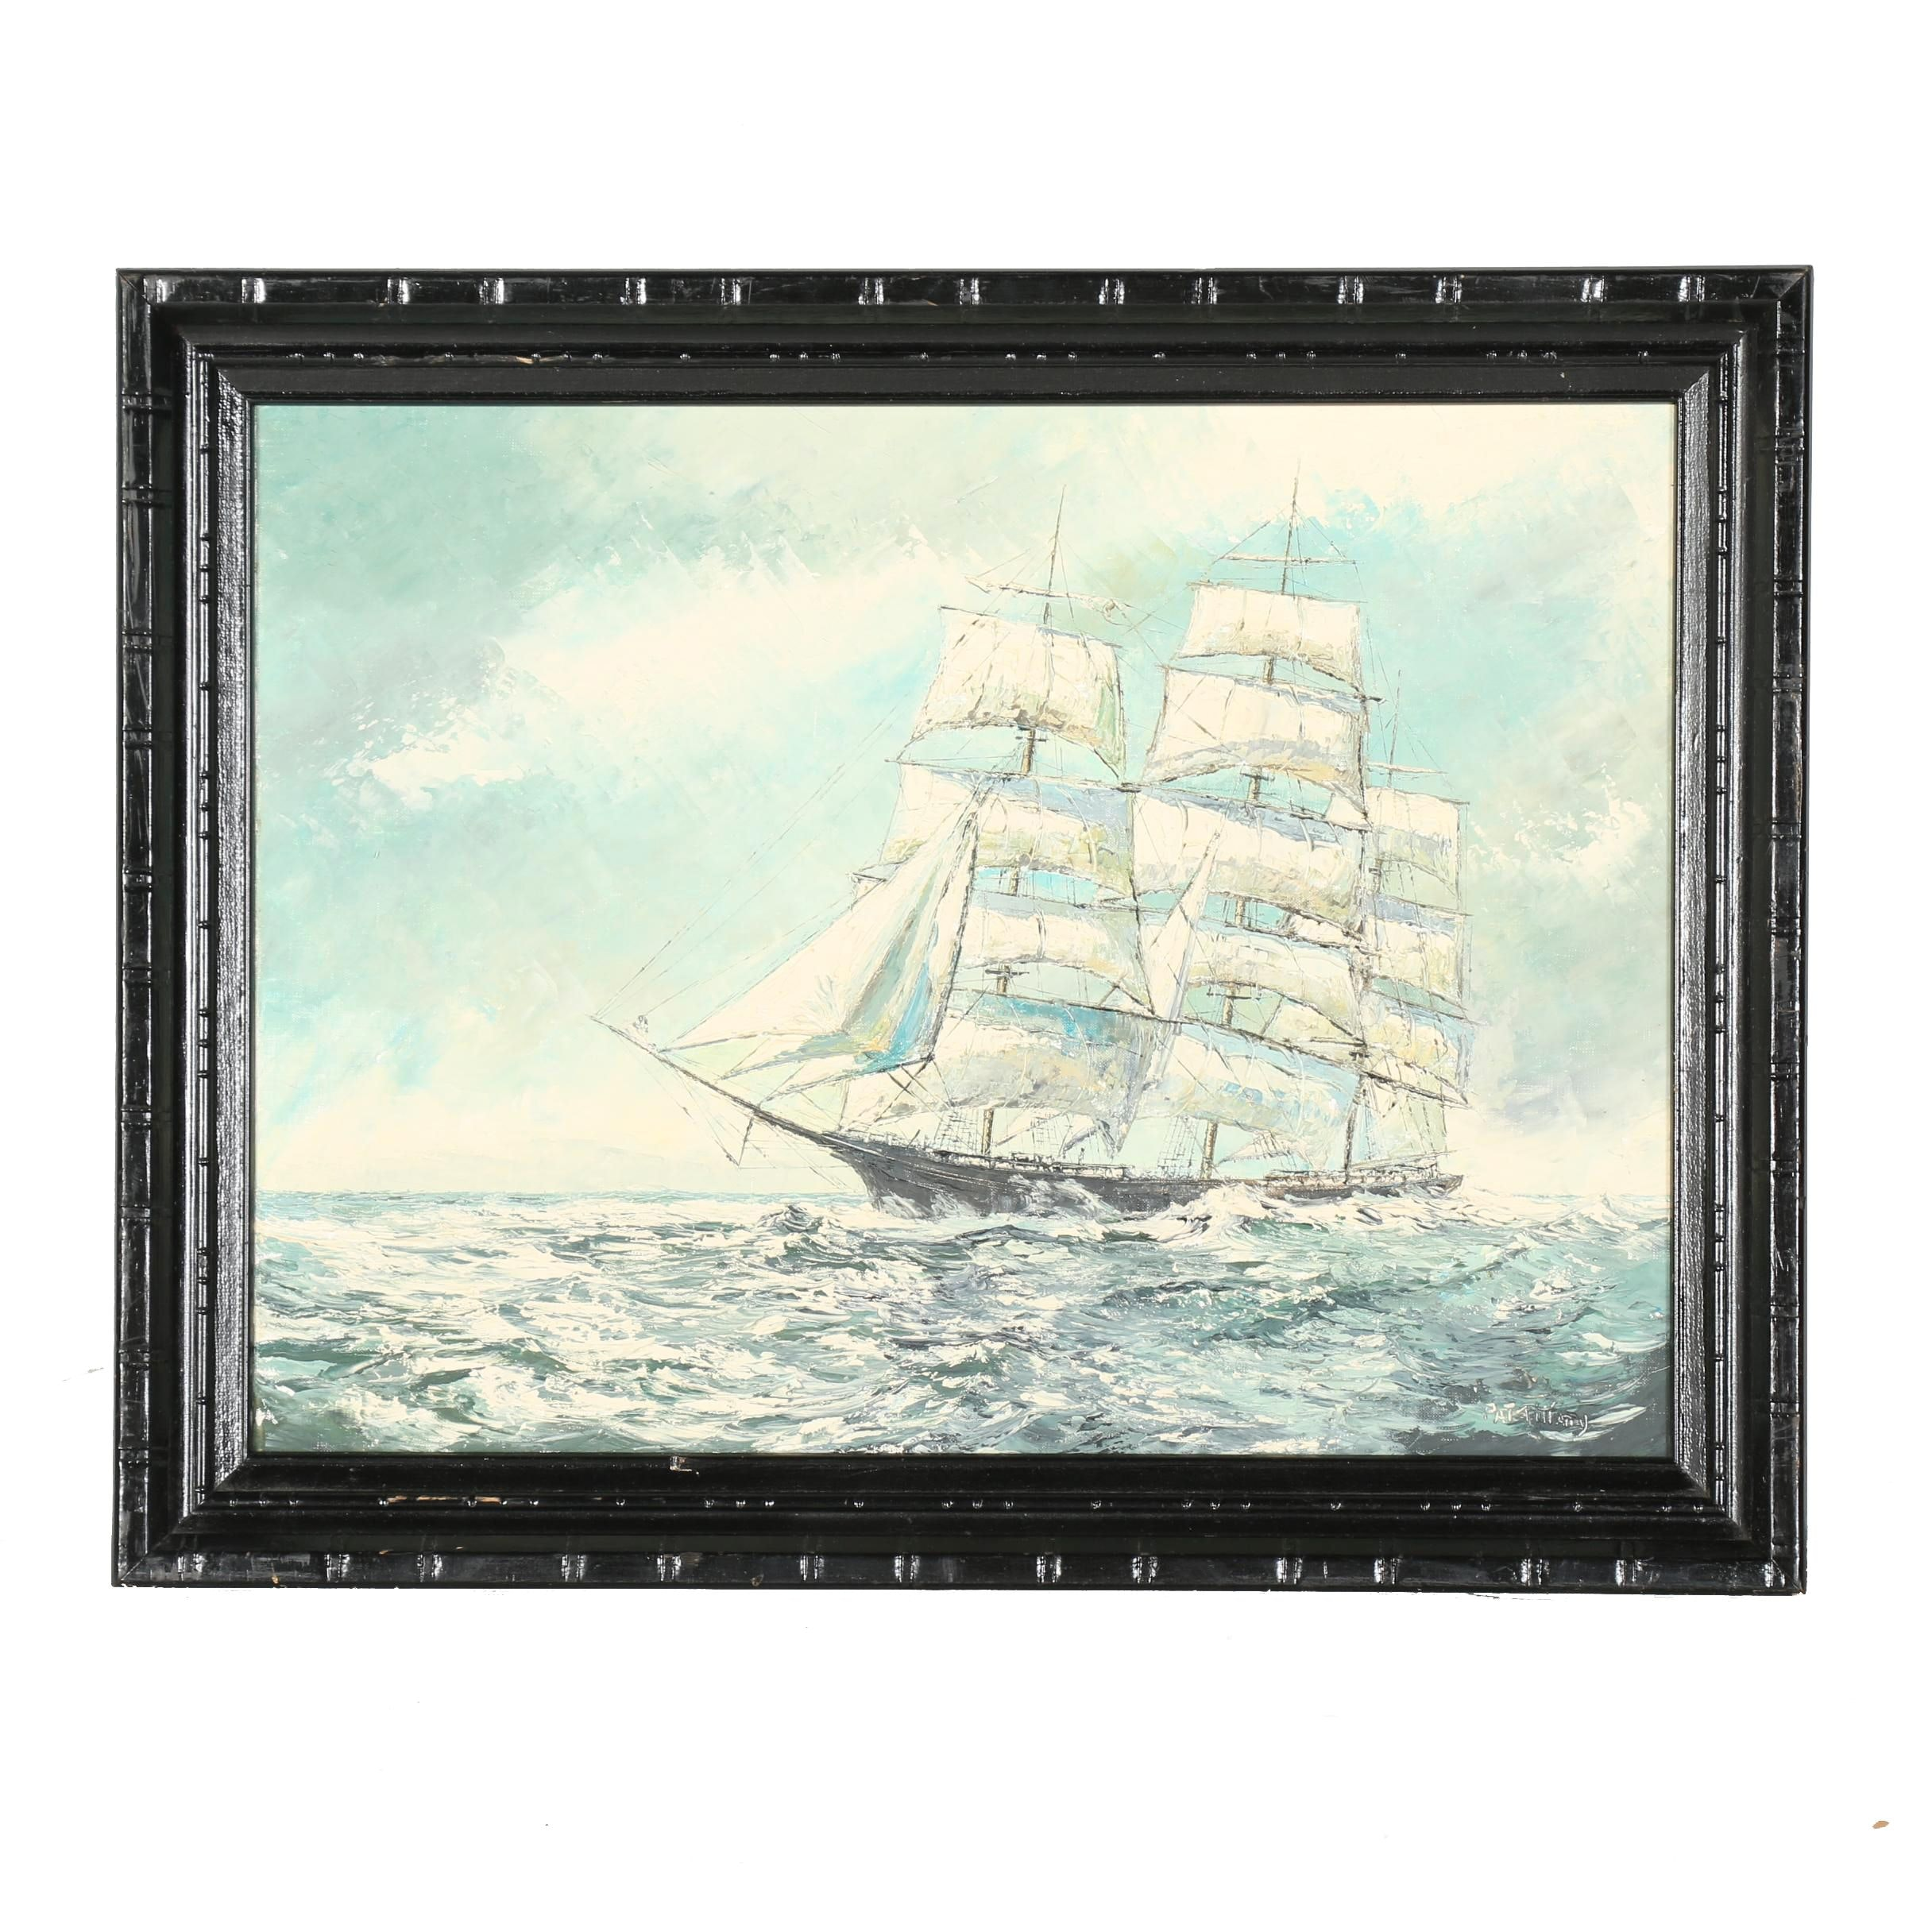 Oil Painting on Canvas Board of a Sailing Clipper